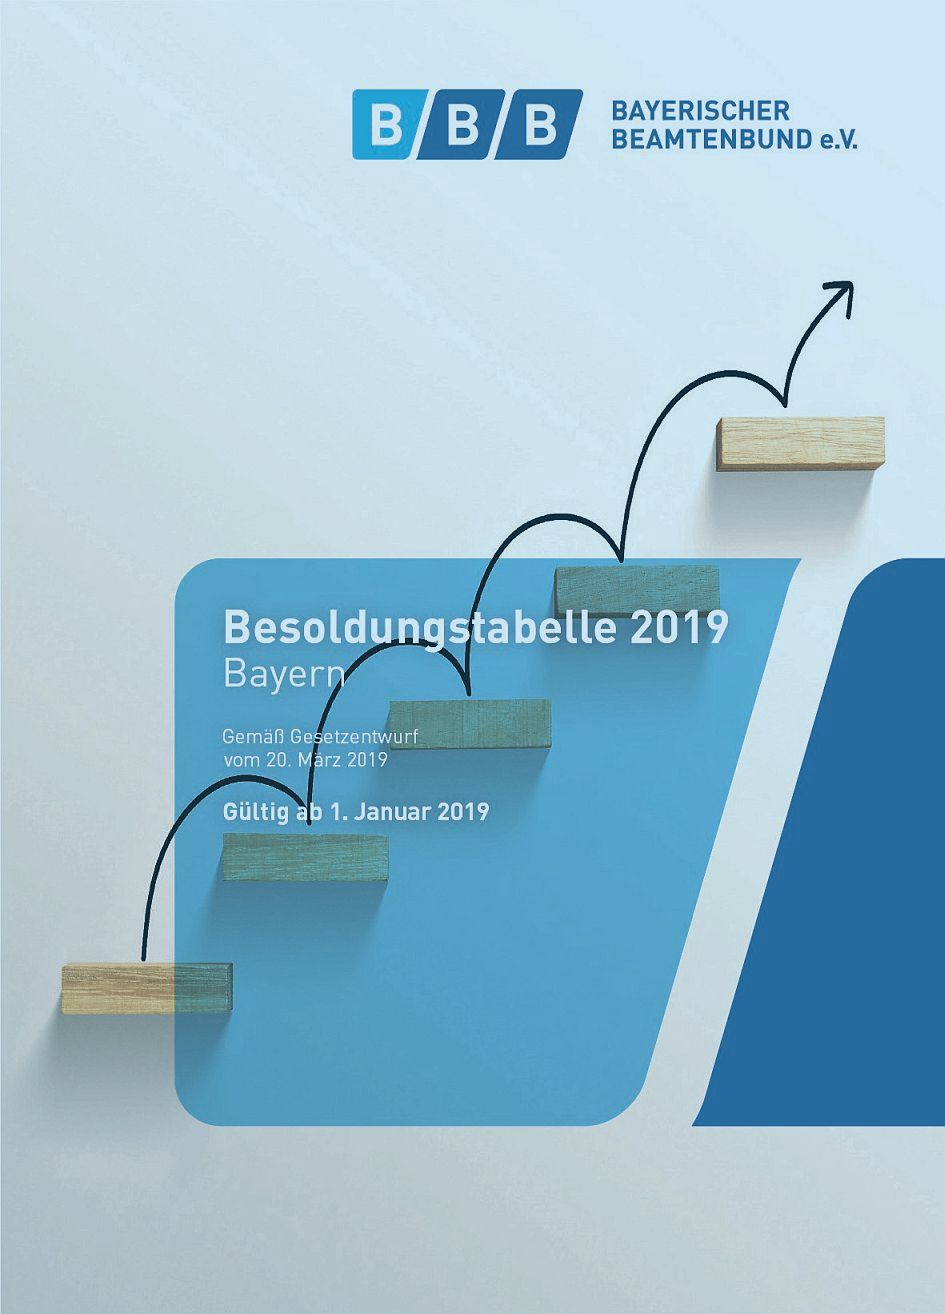 Besoldungstabelle 2019 Cover_Hover